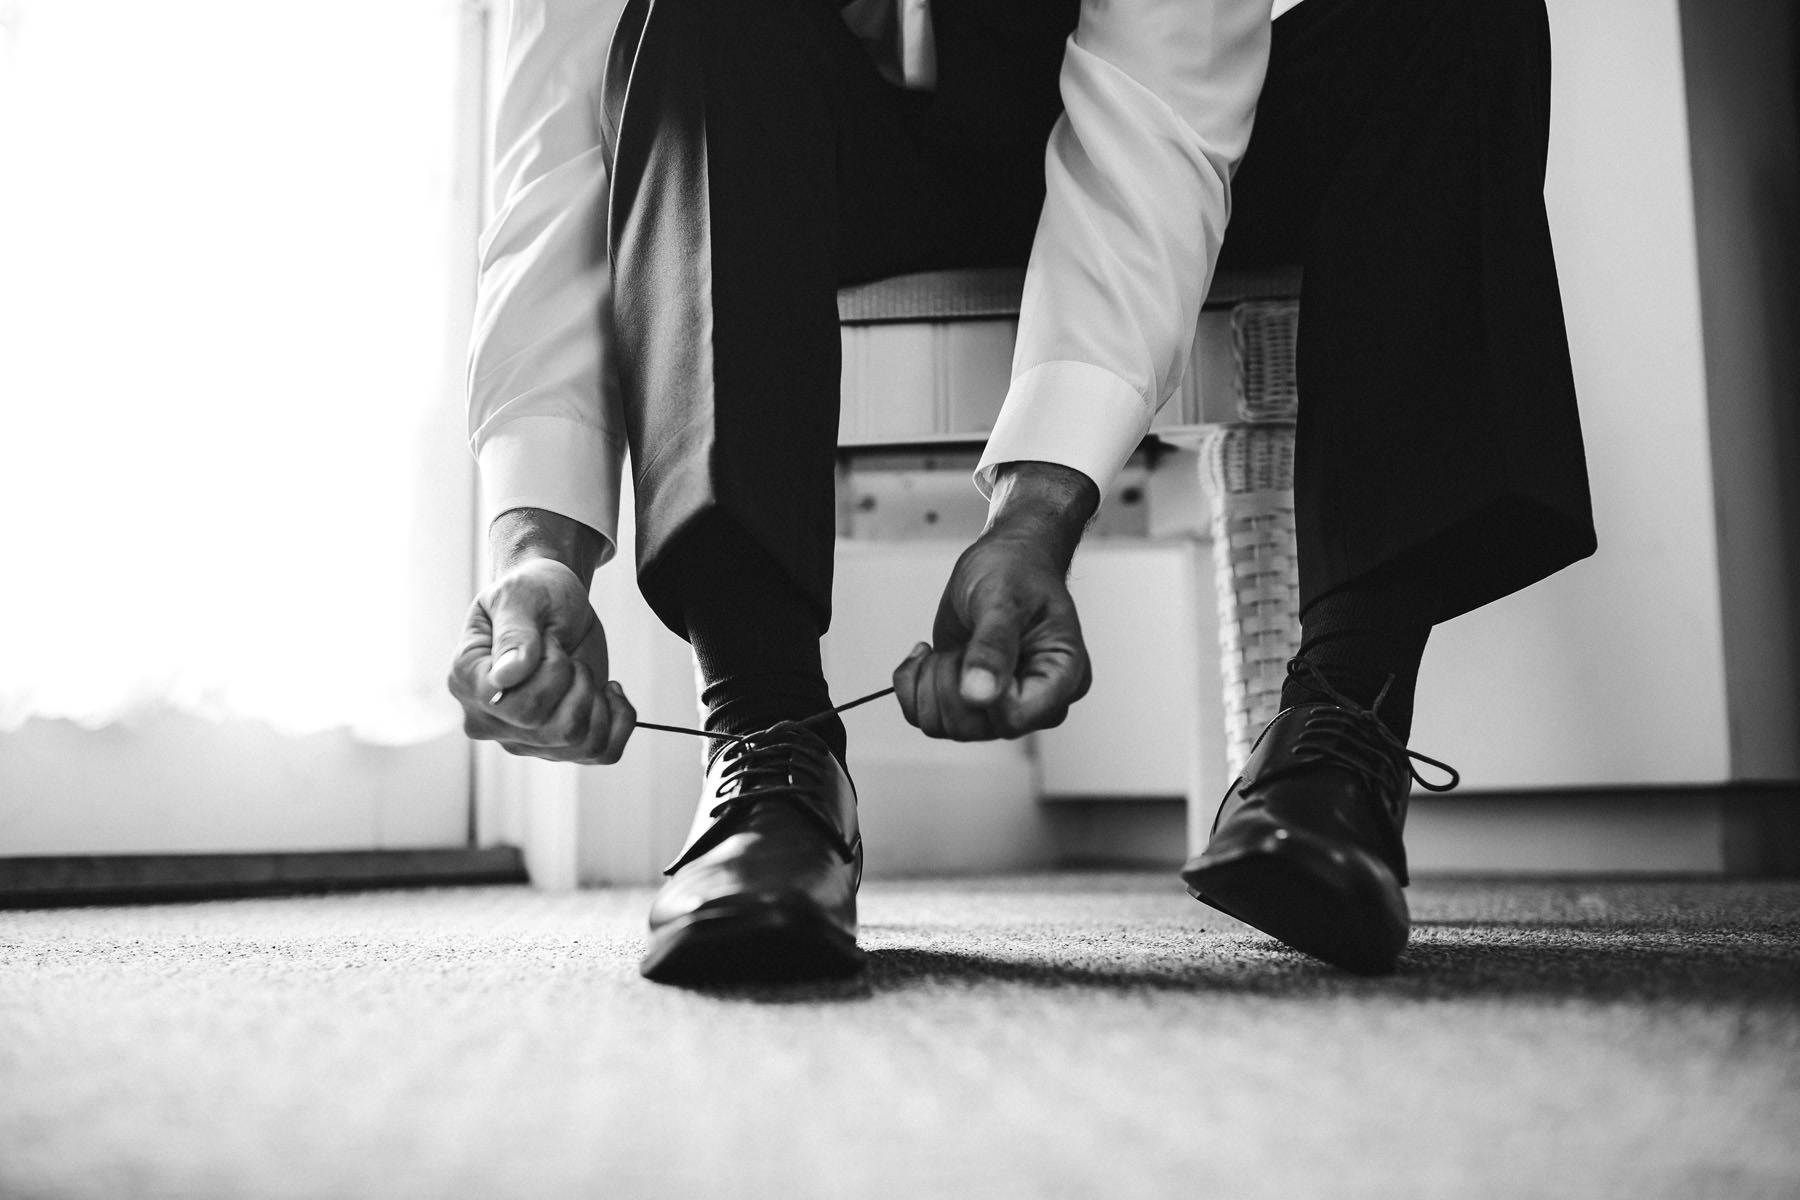 black-and-white-tying-shoes-groom-prep-wedding-day-tiny-house-photo.jpg